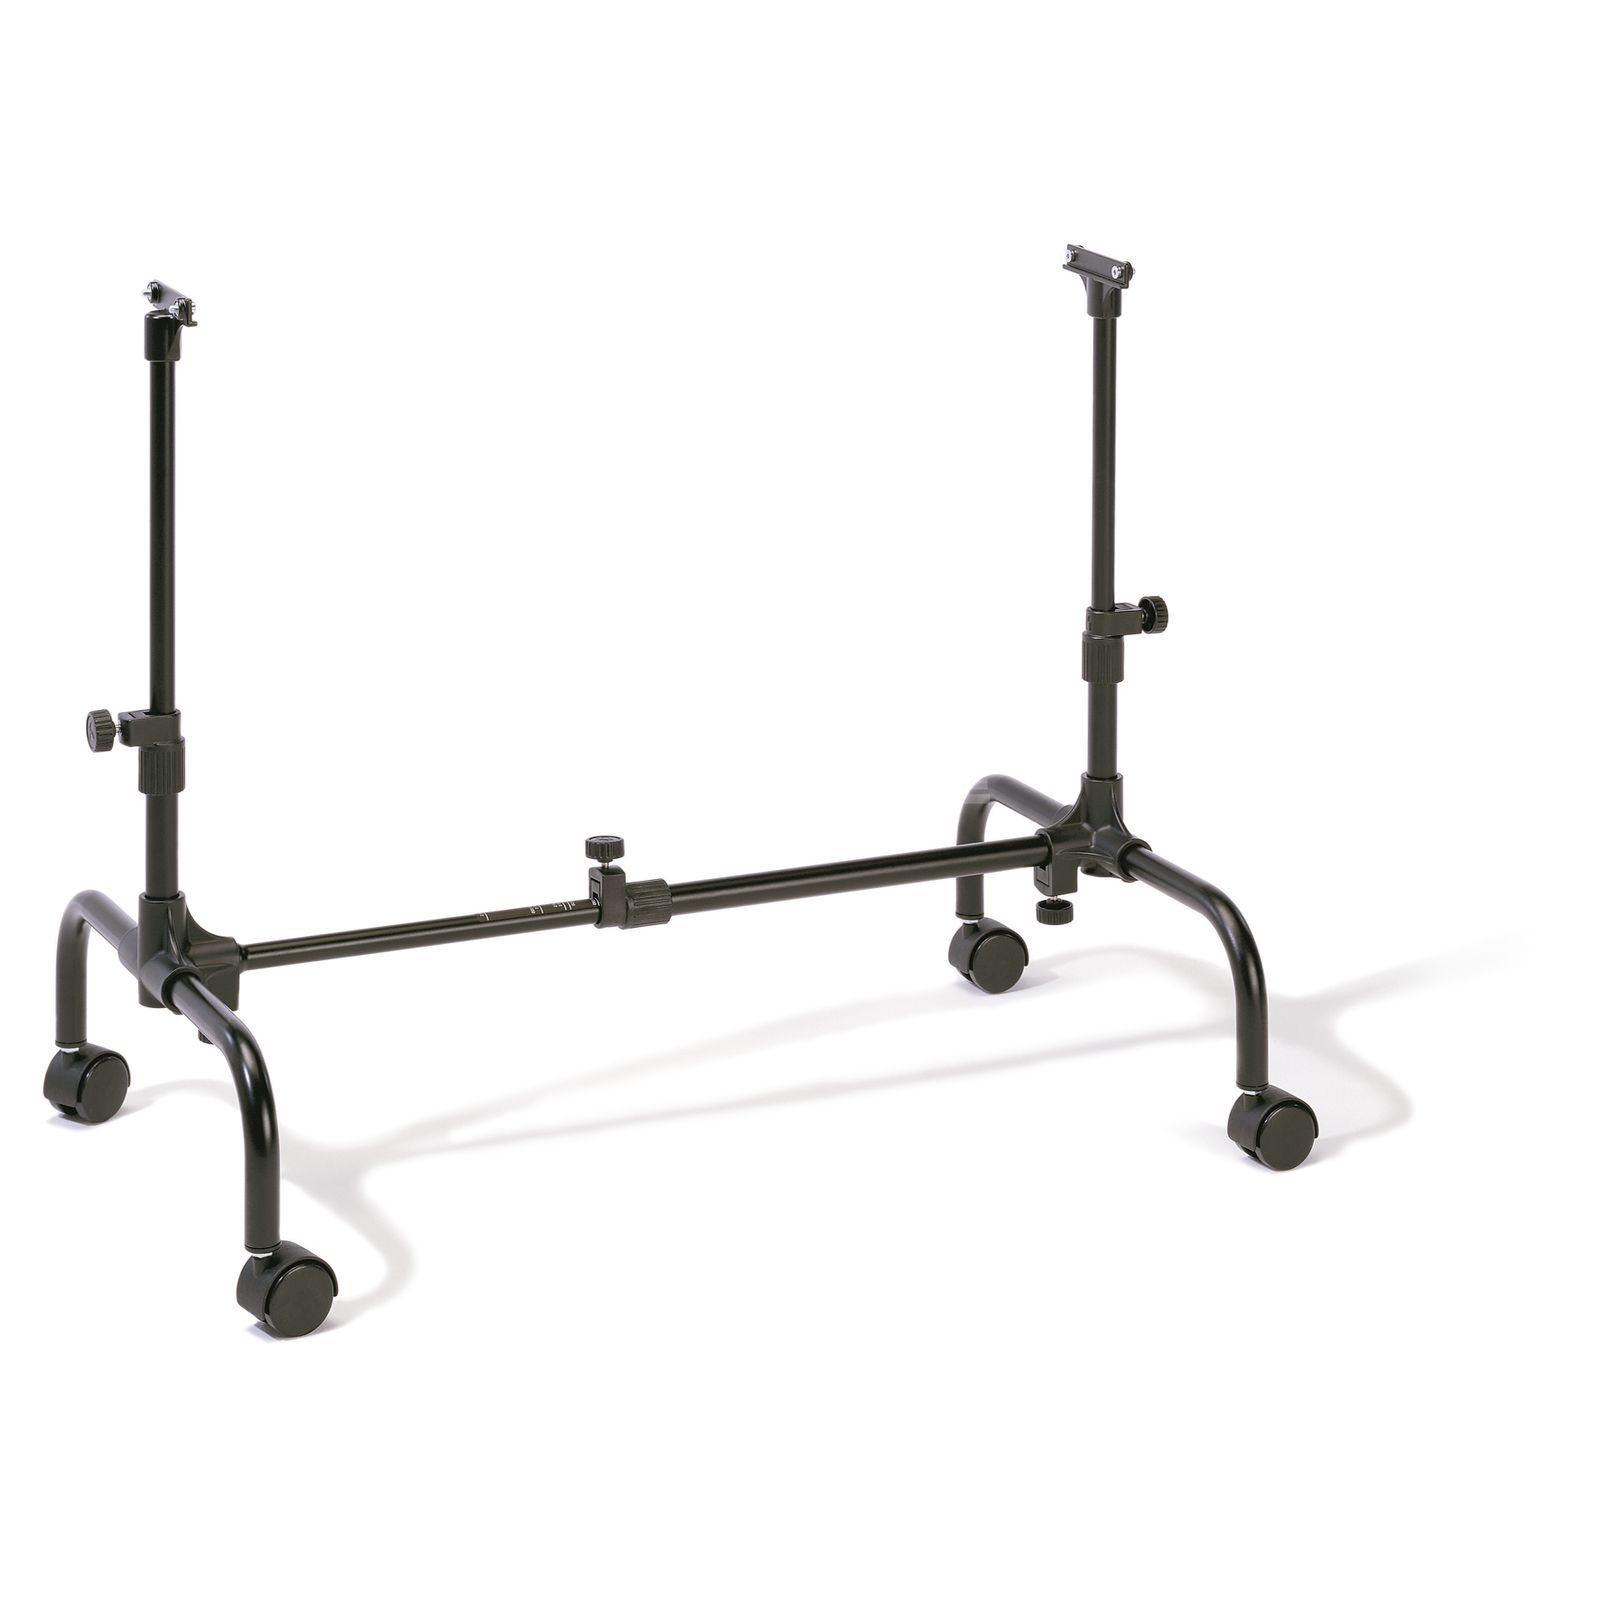 Sonor Basis Trolley BT, f. TAKX 30 Produktbillede